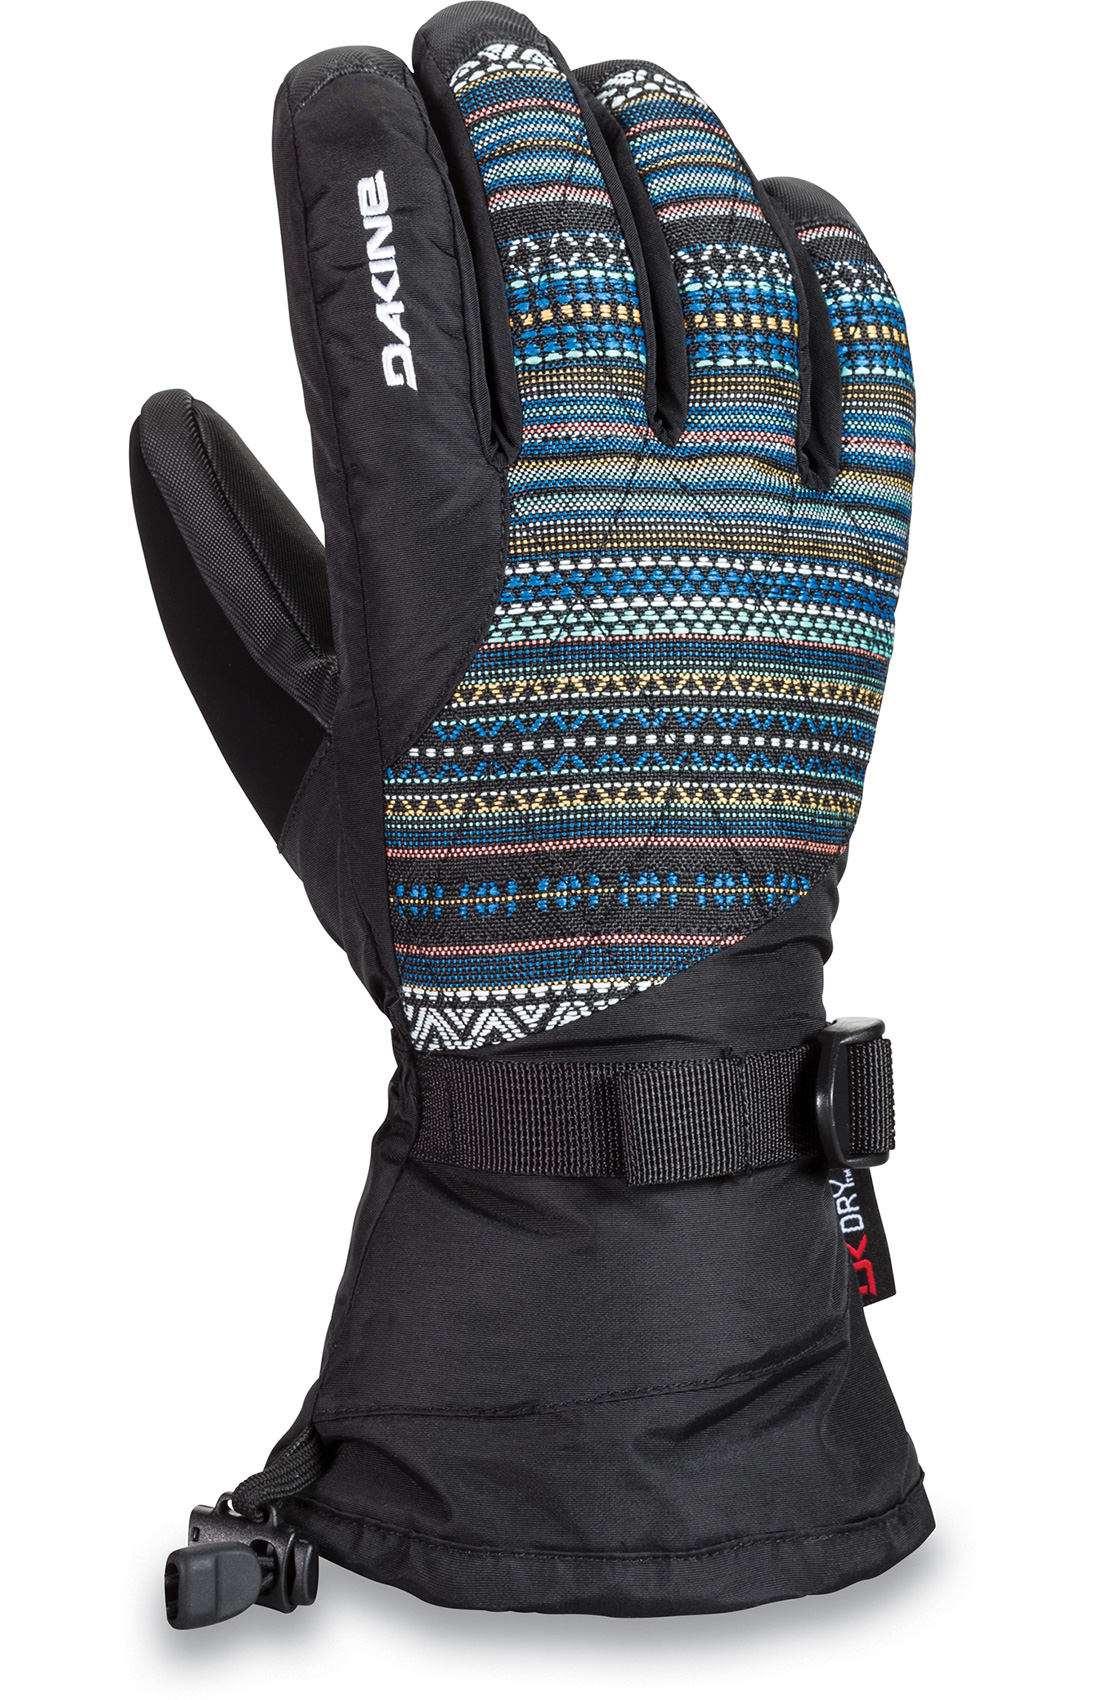 9ce8ff427c5405 Sentinel Dakine Womens Gloves - Camino - Removable Storm Liner Glove  Included, 2018